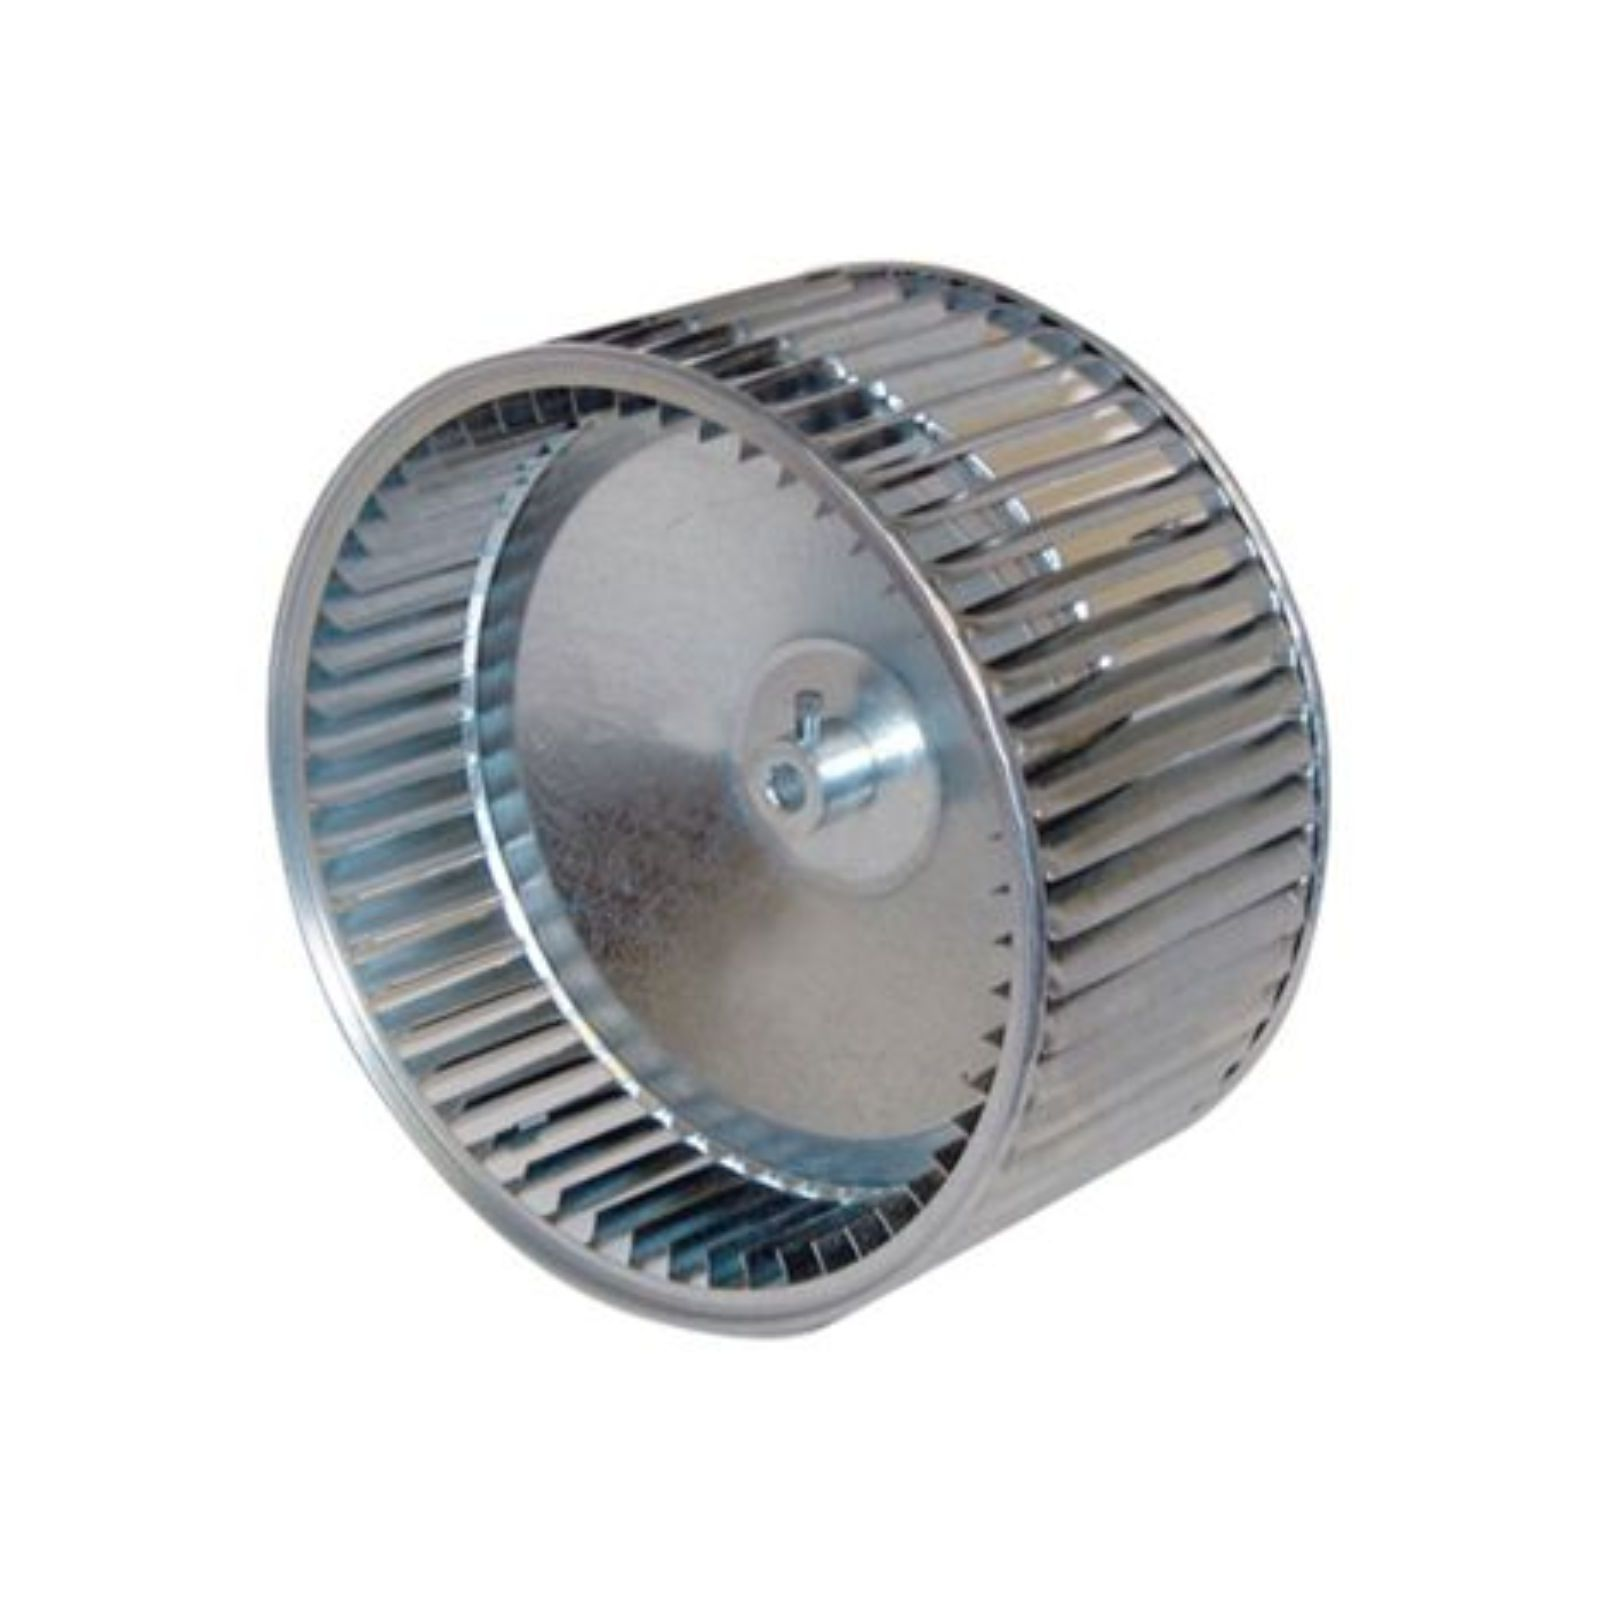 "MARS 41335 - Direct Drive Blower Wheel, 10.62"" Diameter, 10.68"" Wide, 1/2"" Hub Clockwise Convex"